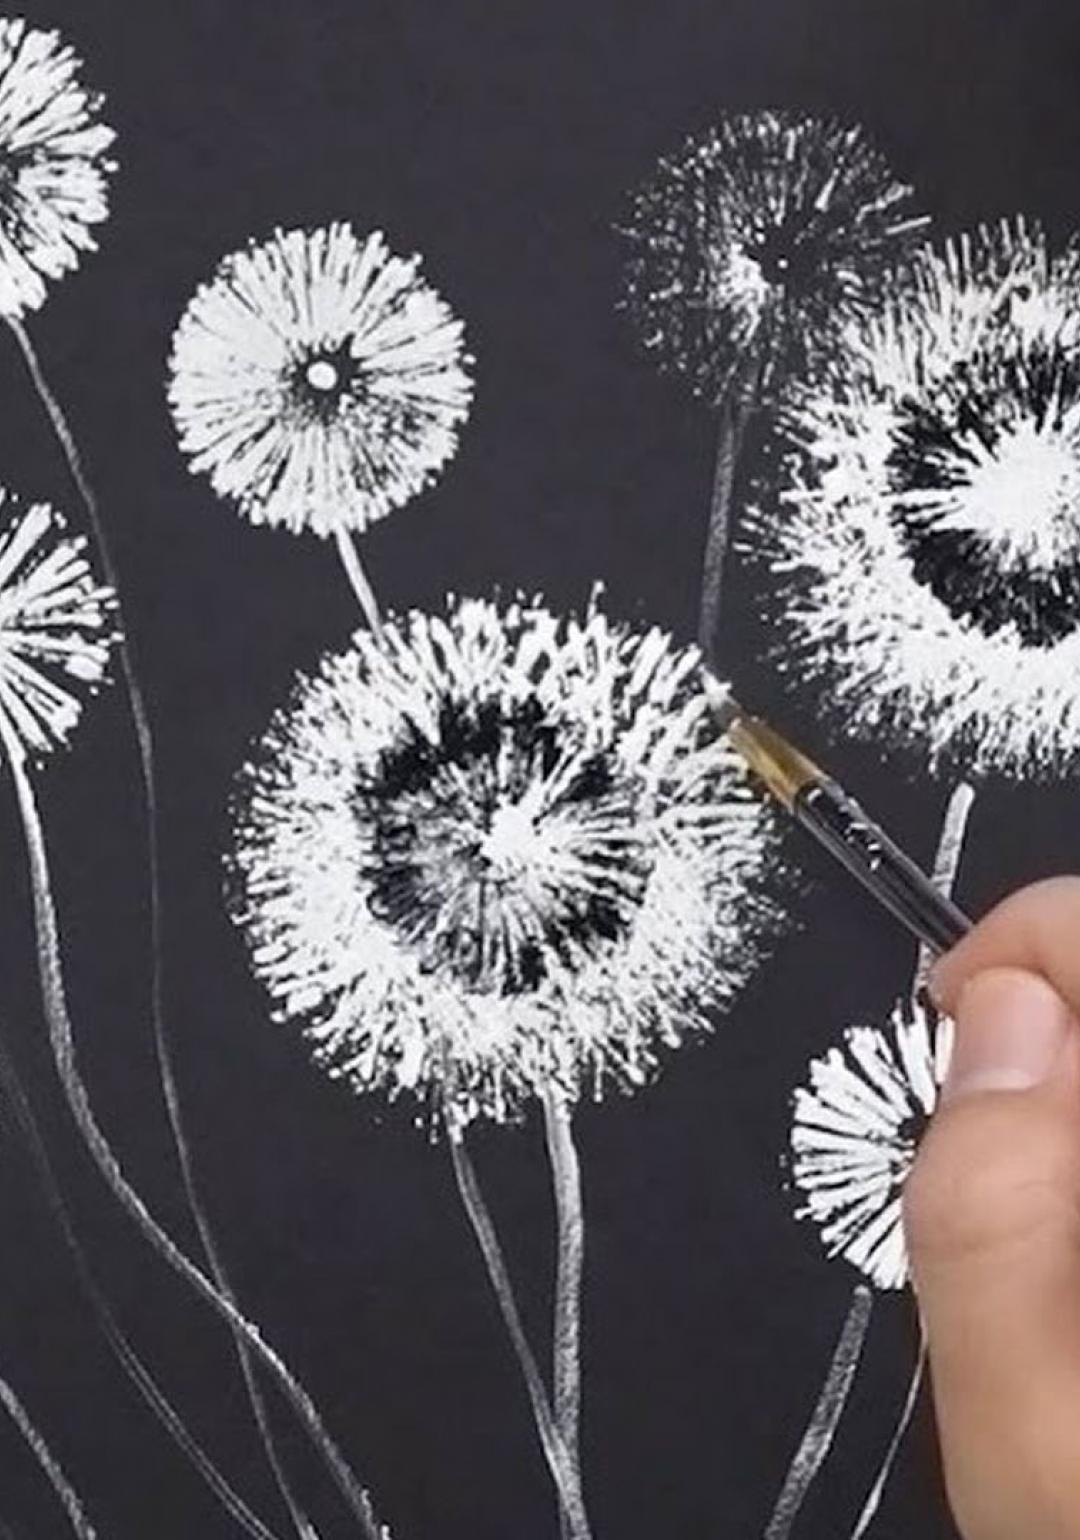 Craft Activity: Dandelion Painting